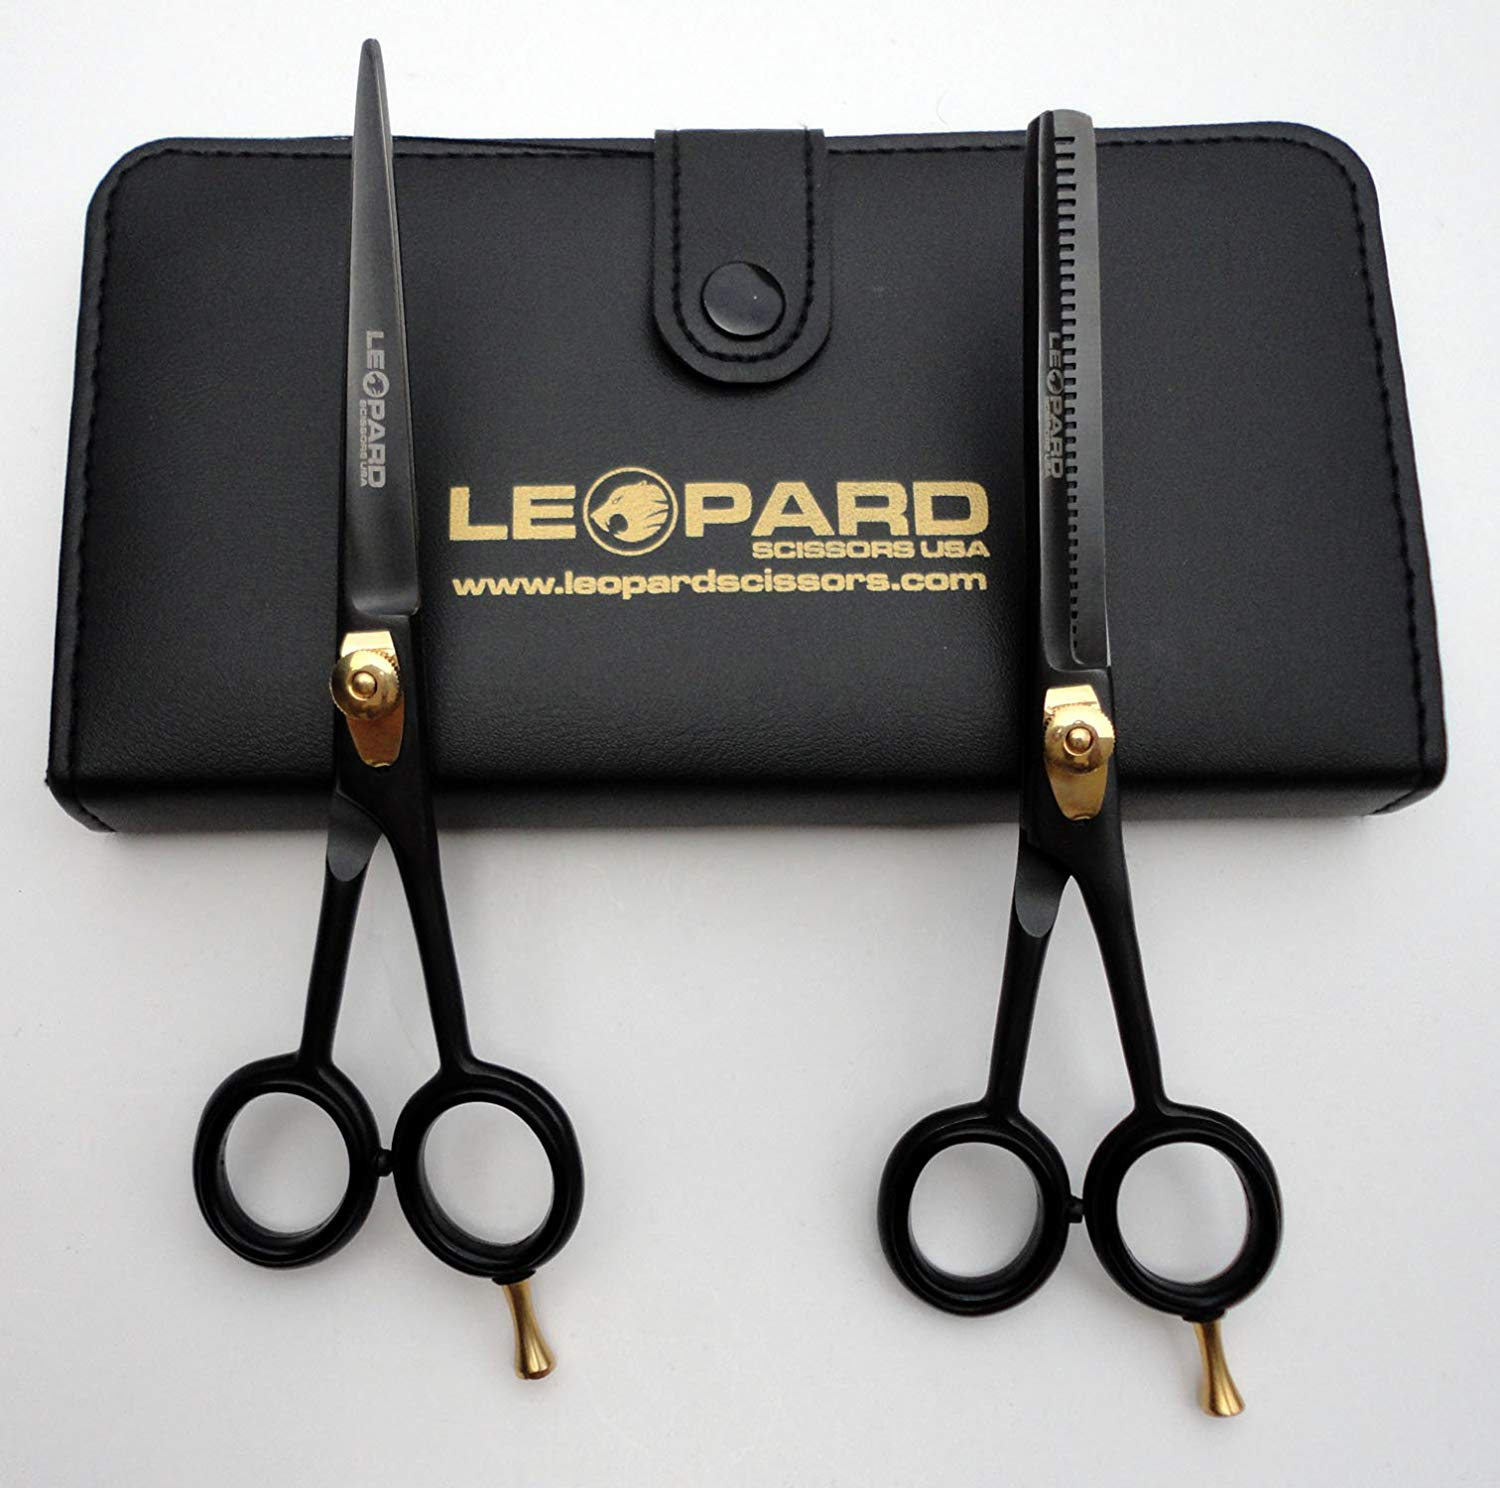 "New Professional Hairdressing Scissors & Thinner Hair Cutting Right Hand Shears Barber Salon Styling Scissors Set 6.5"" Japanese Steel with Free Case Leopard Shears Bs-301"